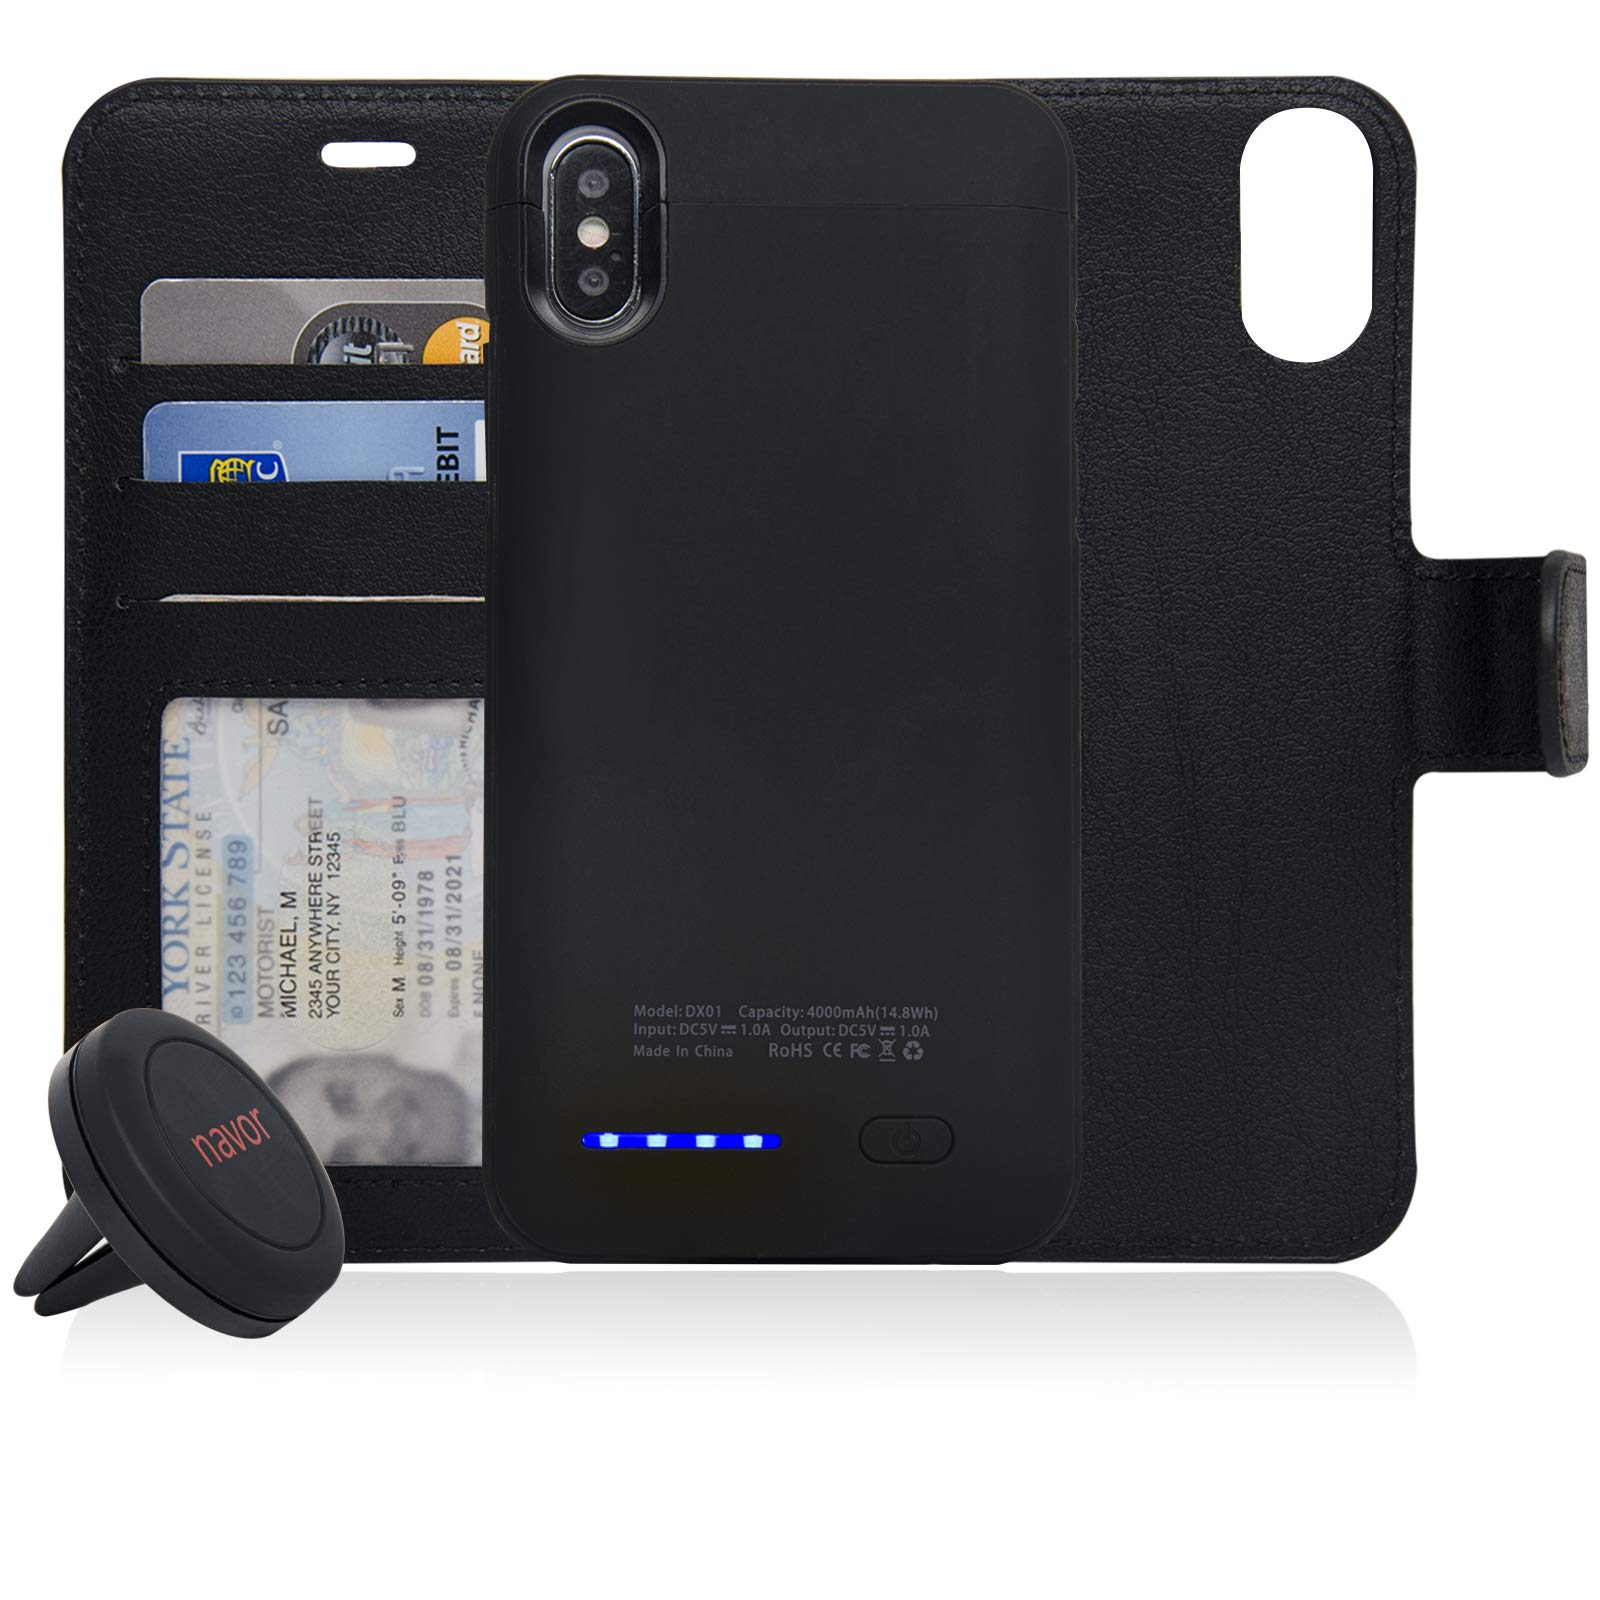 navor Universal Car Mount and RFID Folio Wallet Magnetic Detachable Power Battery Case 4000mAh Compatible for iPhone X/Xs - Black